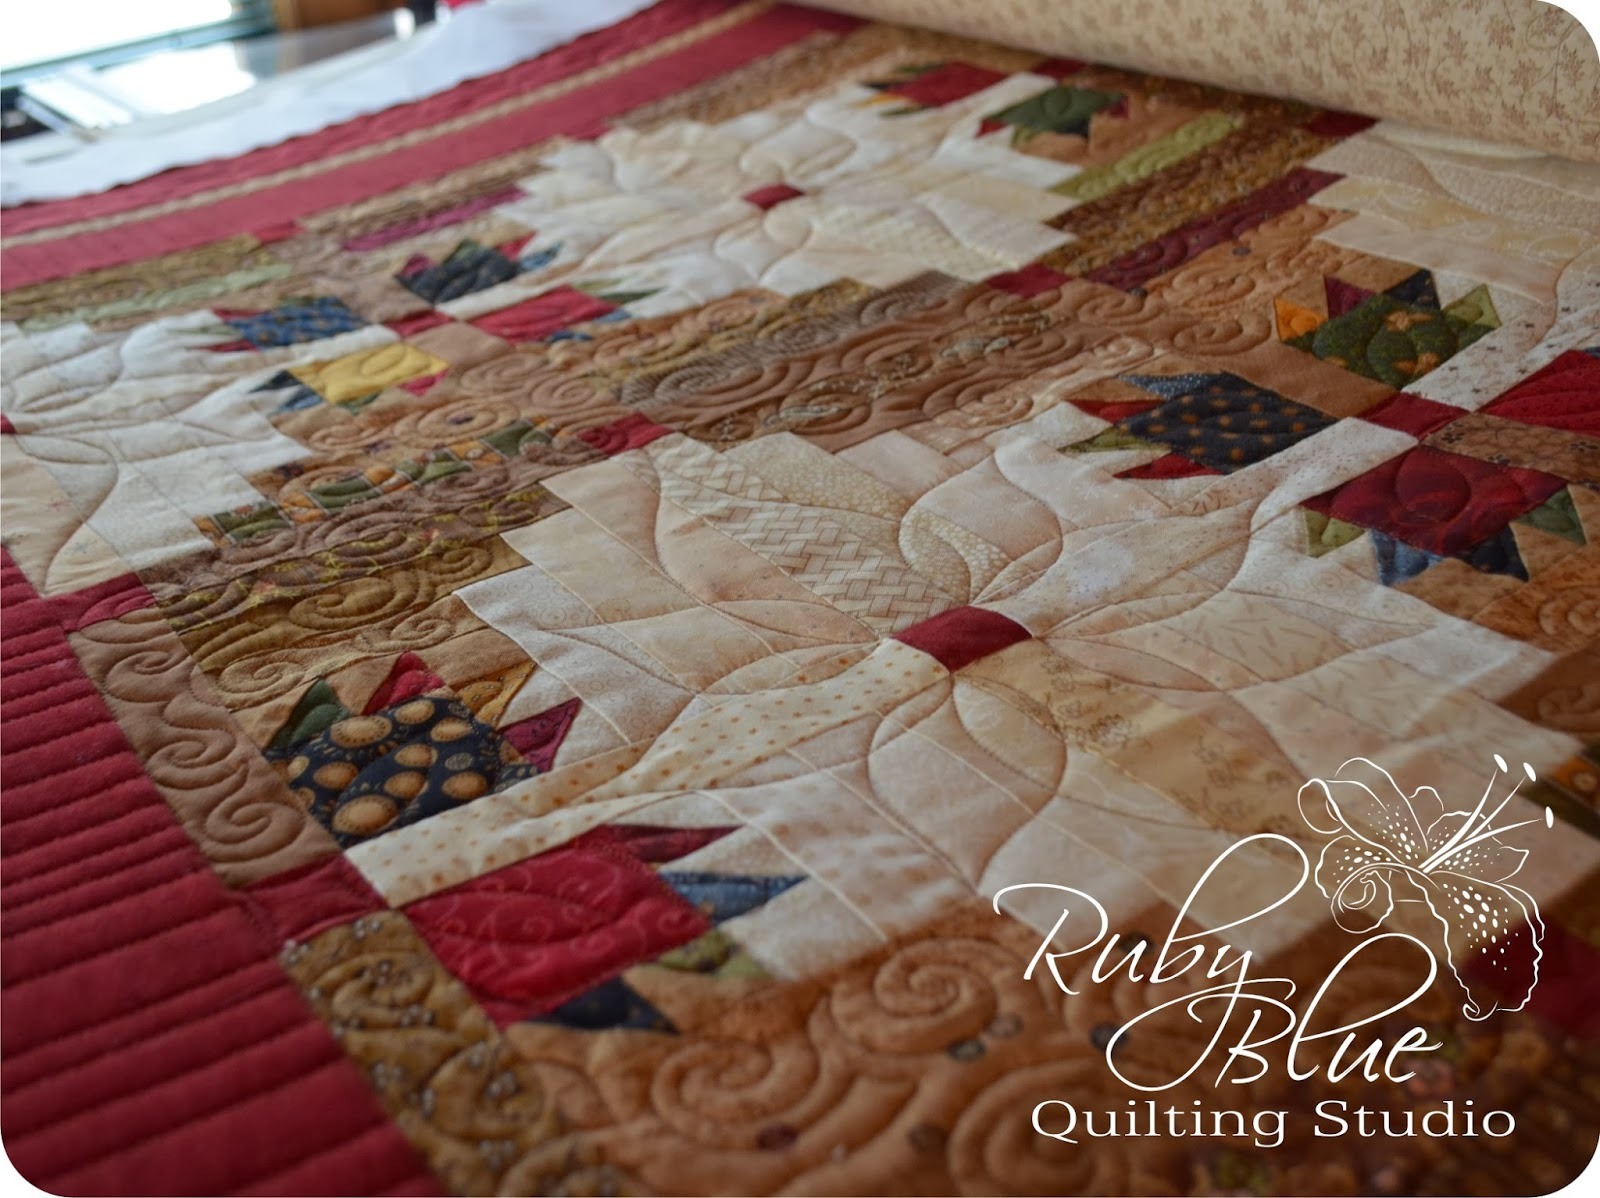 Ruby Blue Quilting Studio: Machine Quilting: Log Cabins